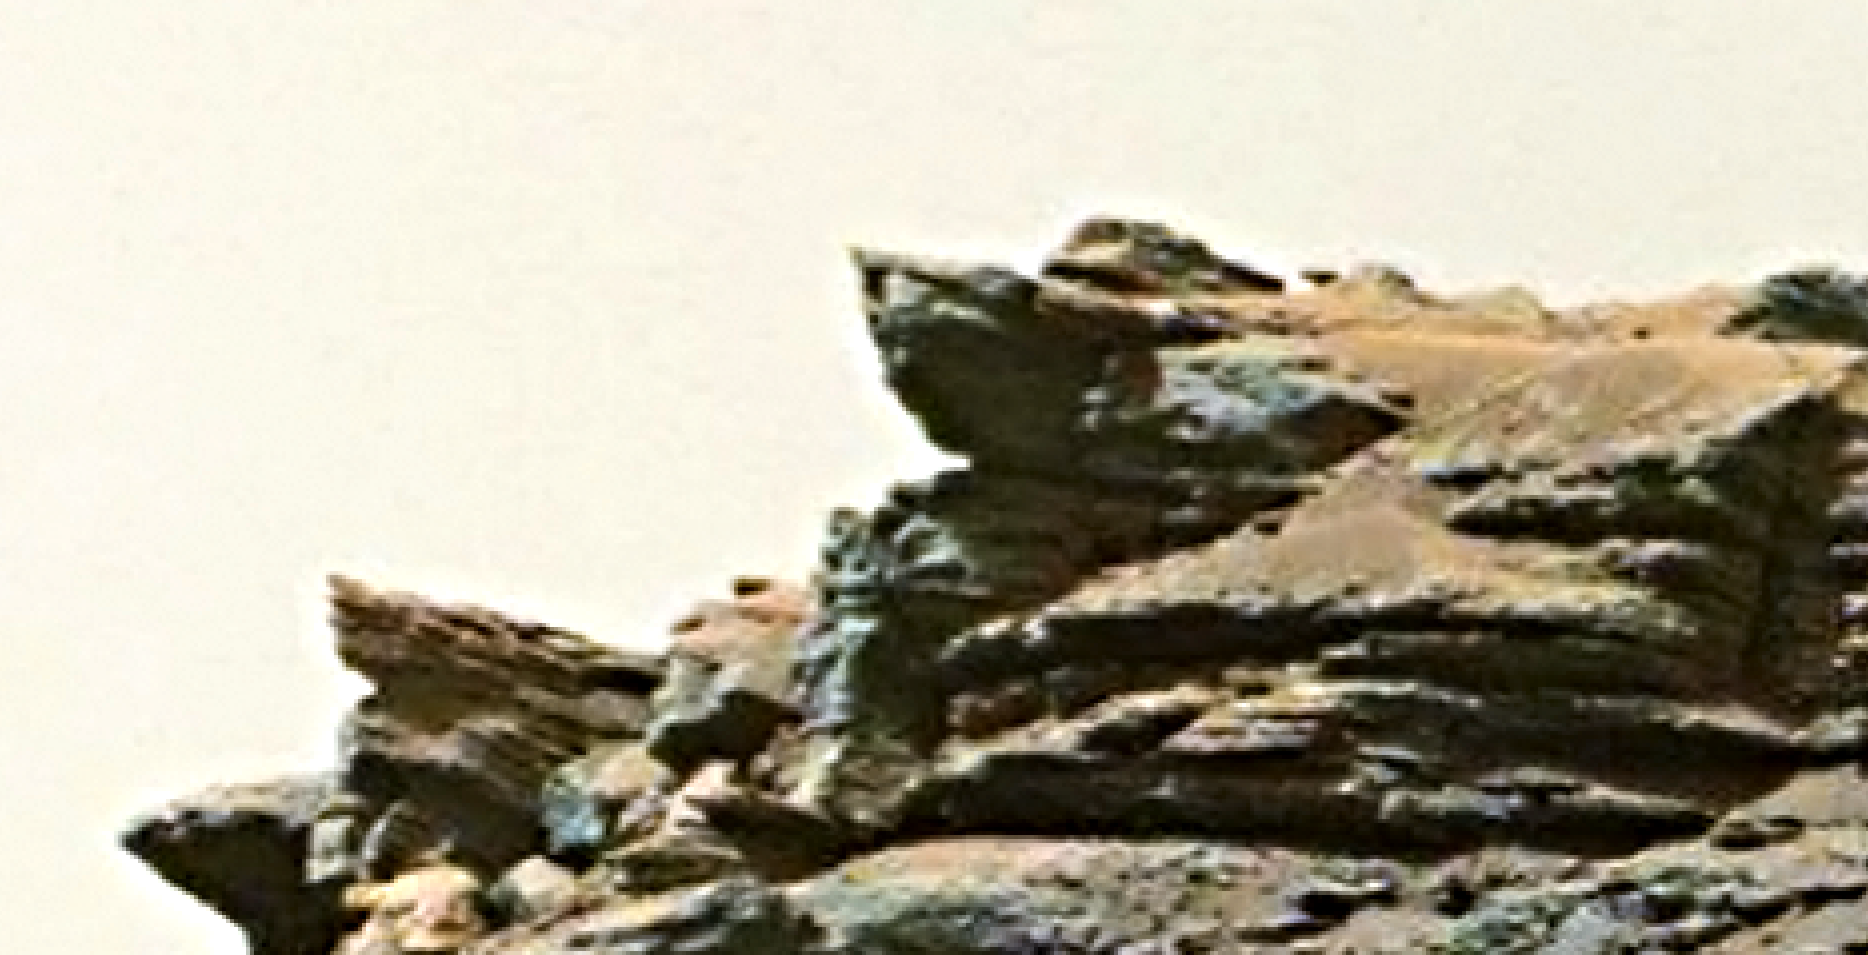 mars-sol-1454-anomaly-artifacts-1abt-was-life-on-mars